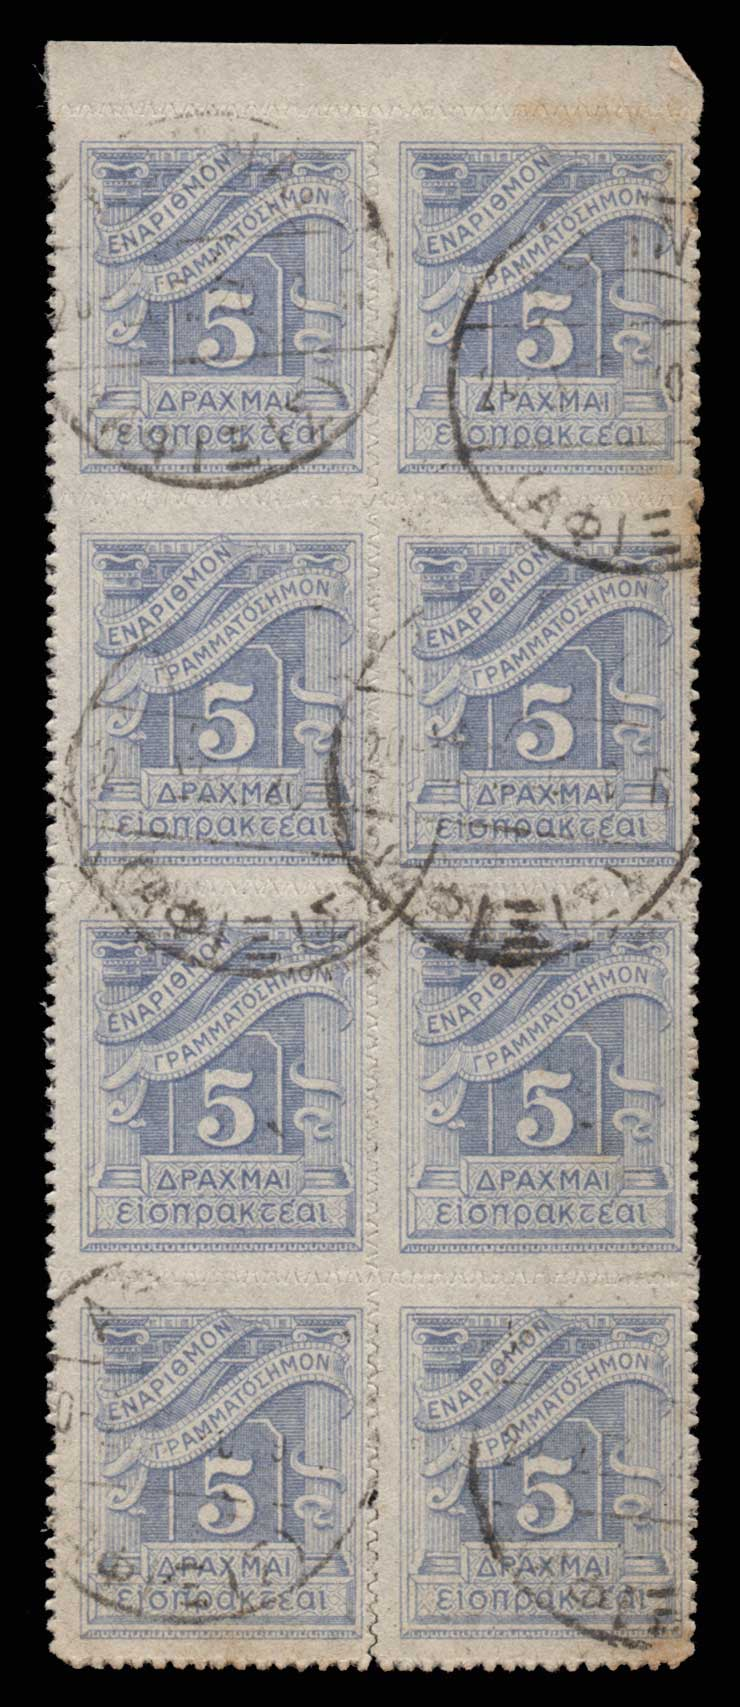 Lot 879 - -  POSTAGE DUE STAMPS Postage due stamps -  Athens Auctions Public Auction 74 General Stamp Sale